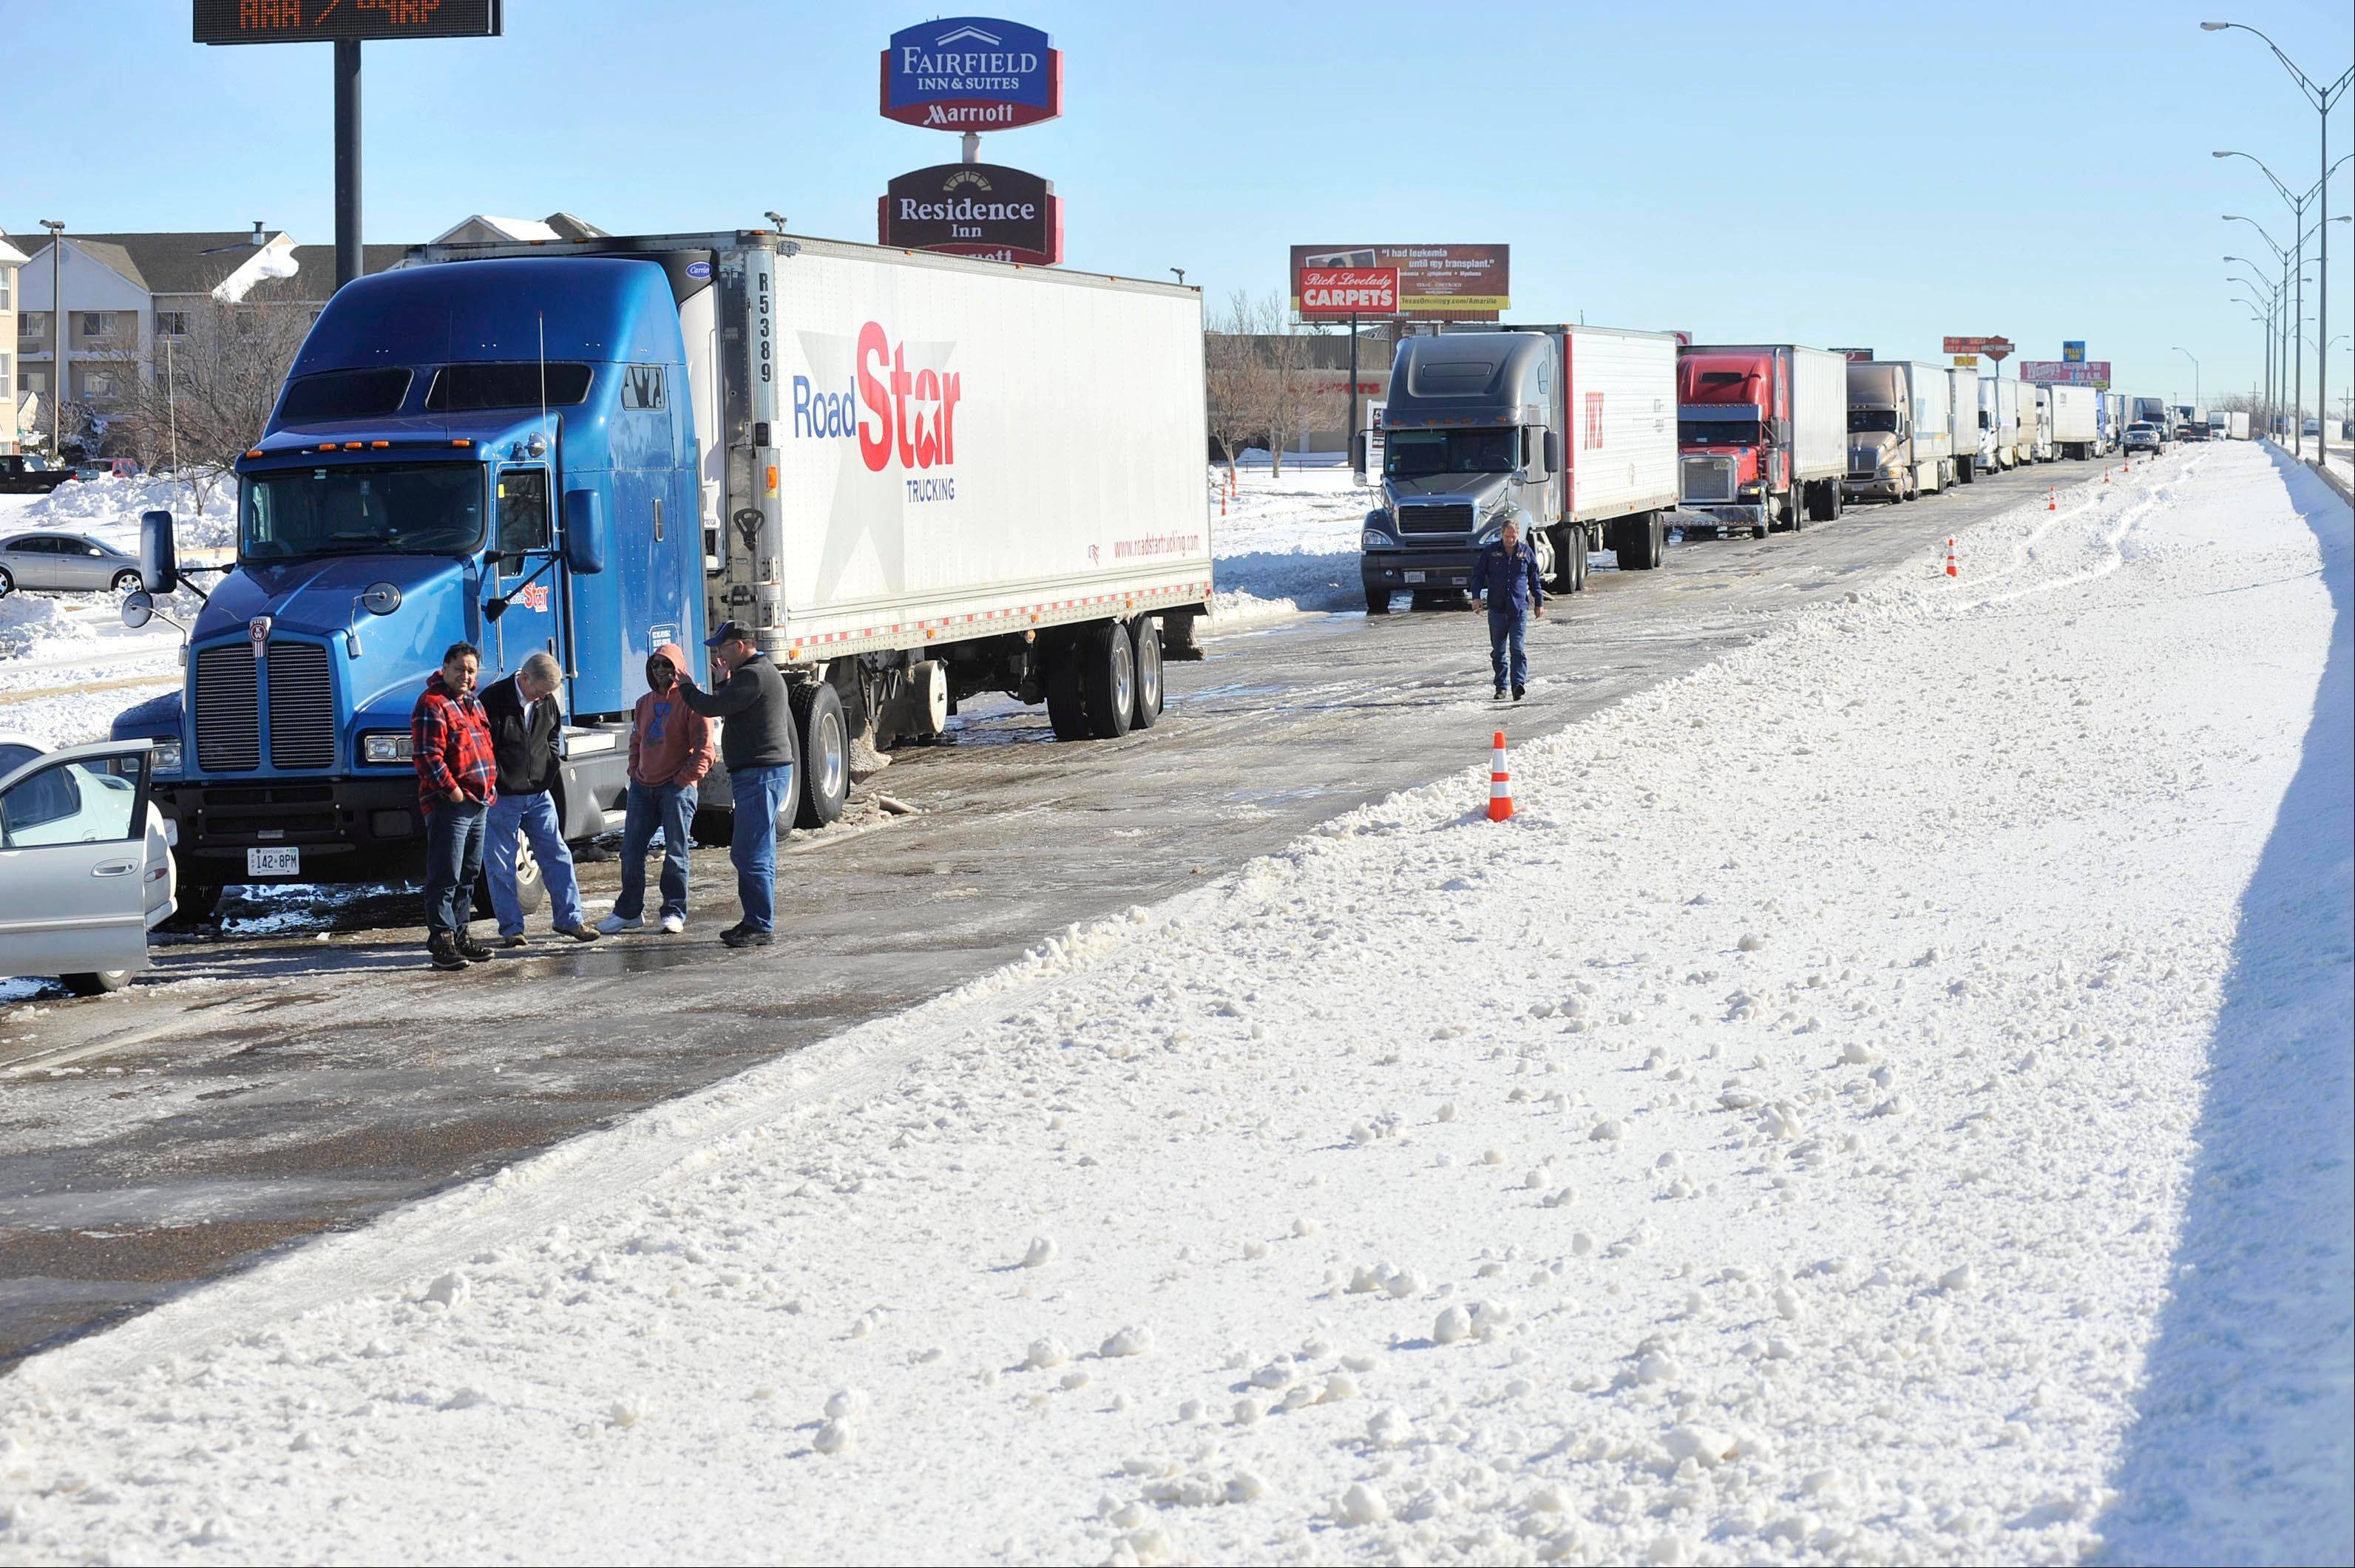 Traffic is at a complete standstill waiting for the highway to reopen on Tuesday in Amarillo, Texas. I-40 westbound was reopened and traffic began moving at noon. The blizzard that hammered the nation's midsection broke a 120-year-old record in Amarillo for one-day snowfall in February with 19.1 inches.